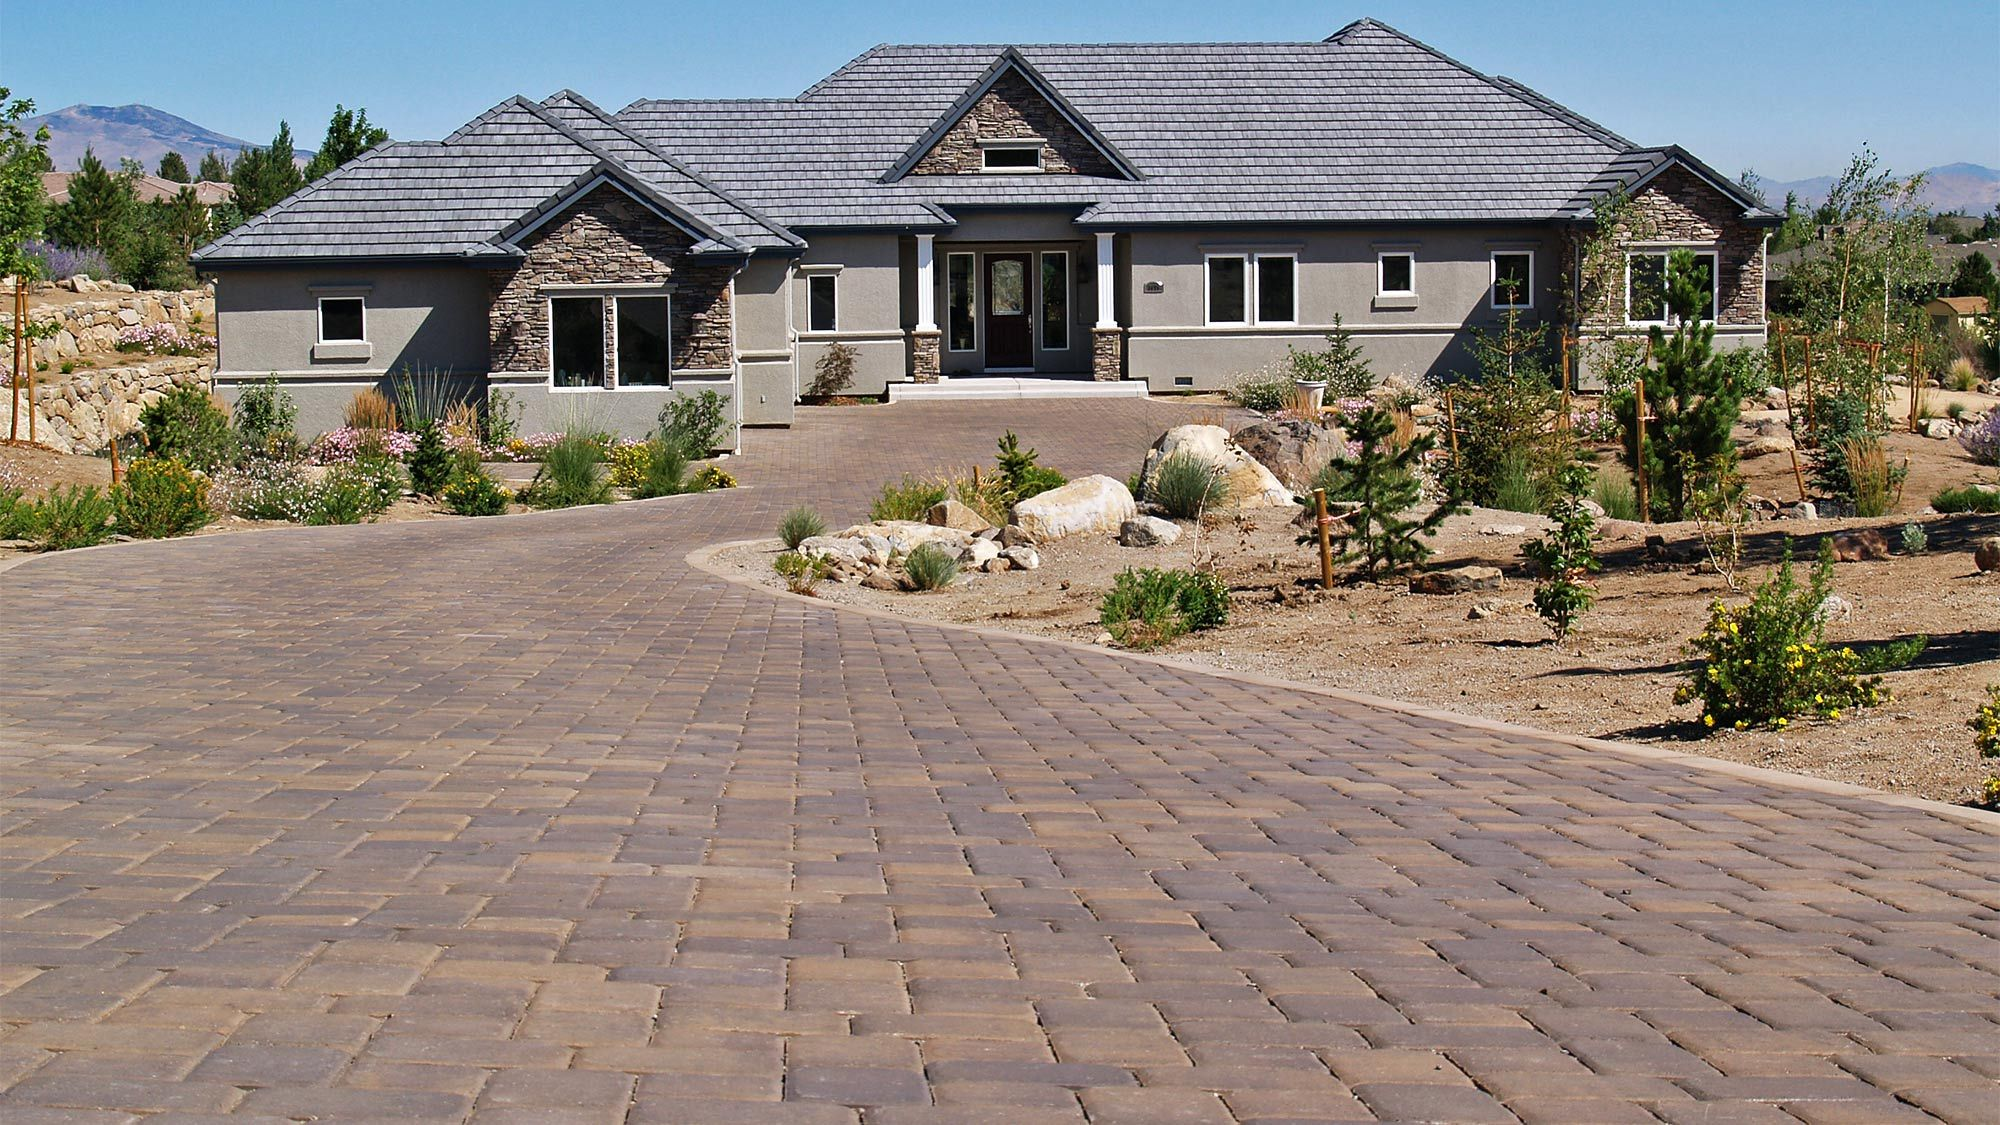 7 Types Of Driveways Do You Have The Right One For Your Home